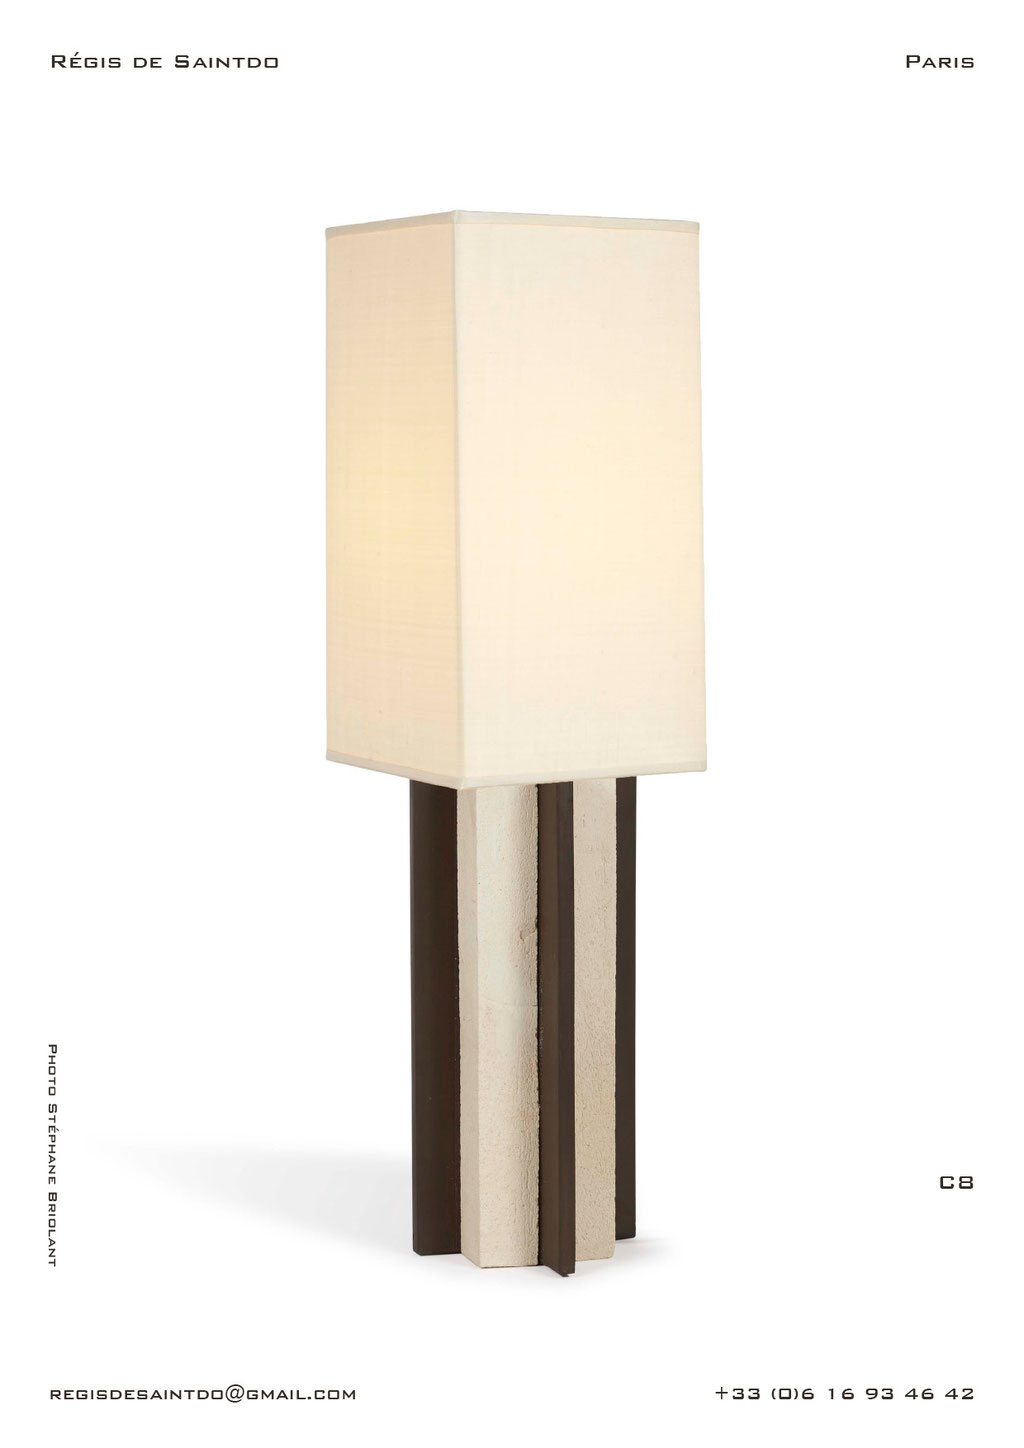 Lamp-C8-white-rough-brown-polished-handmade-unique